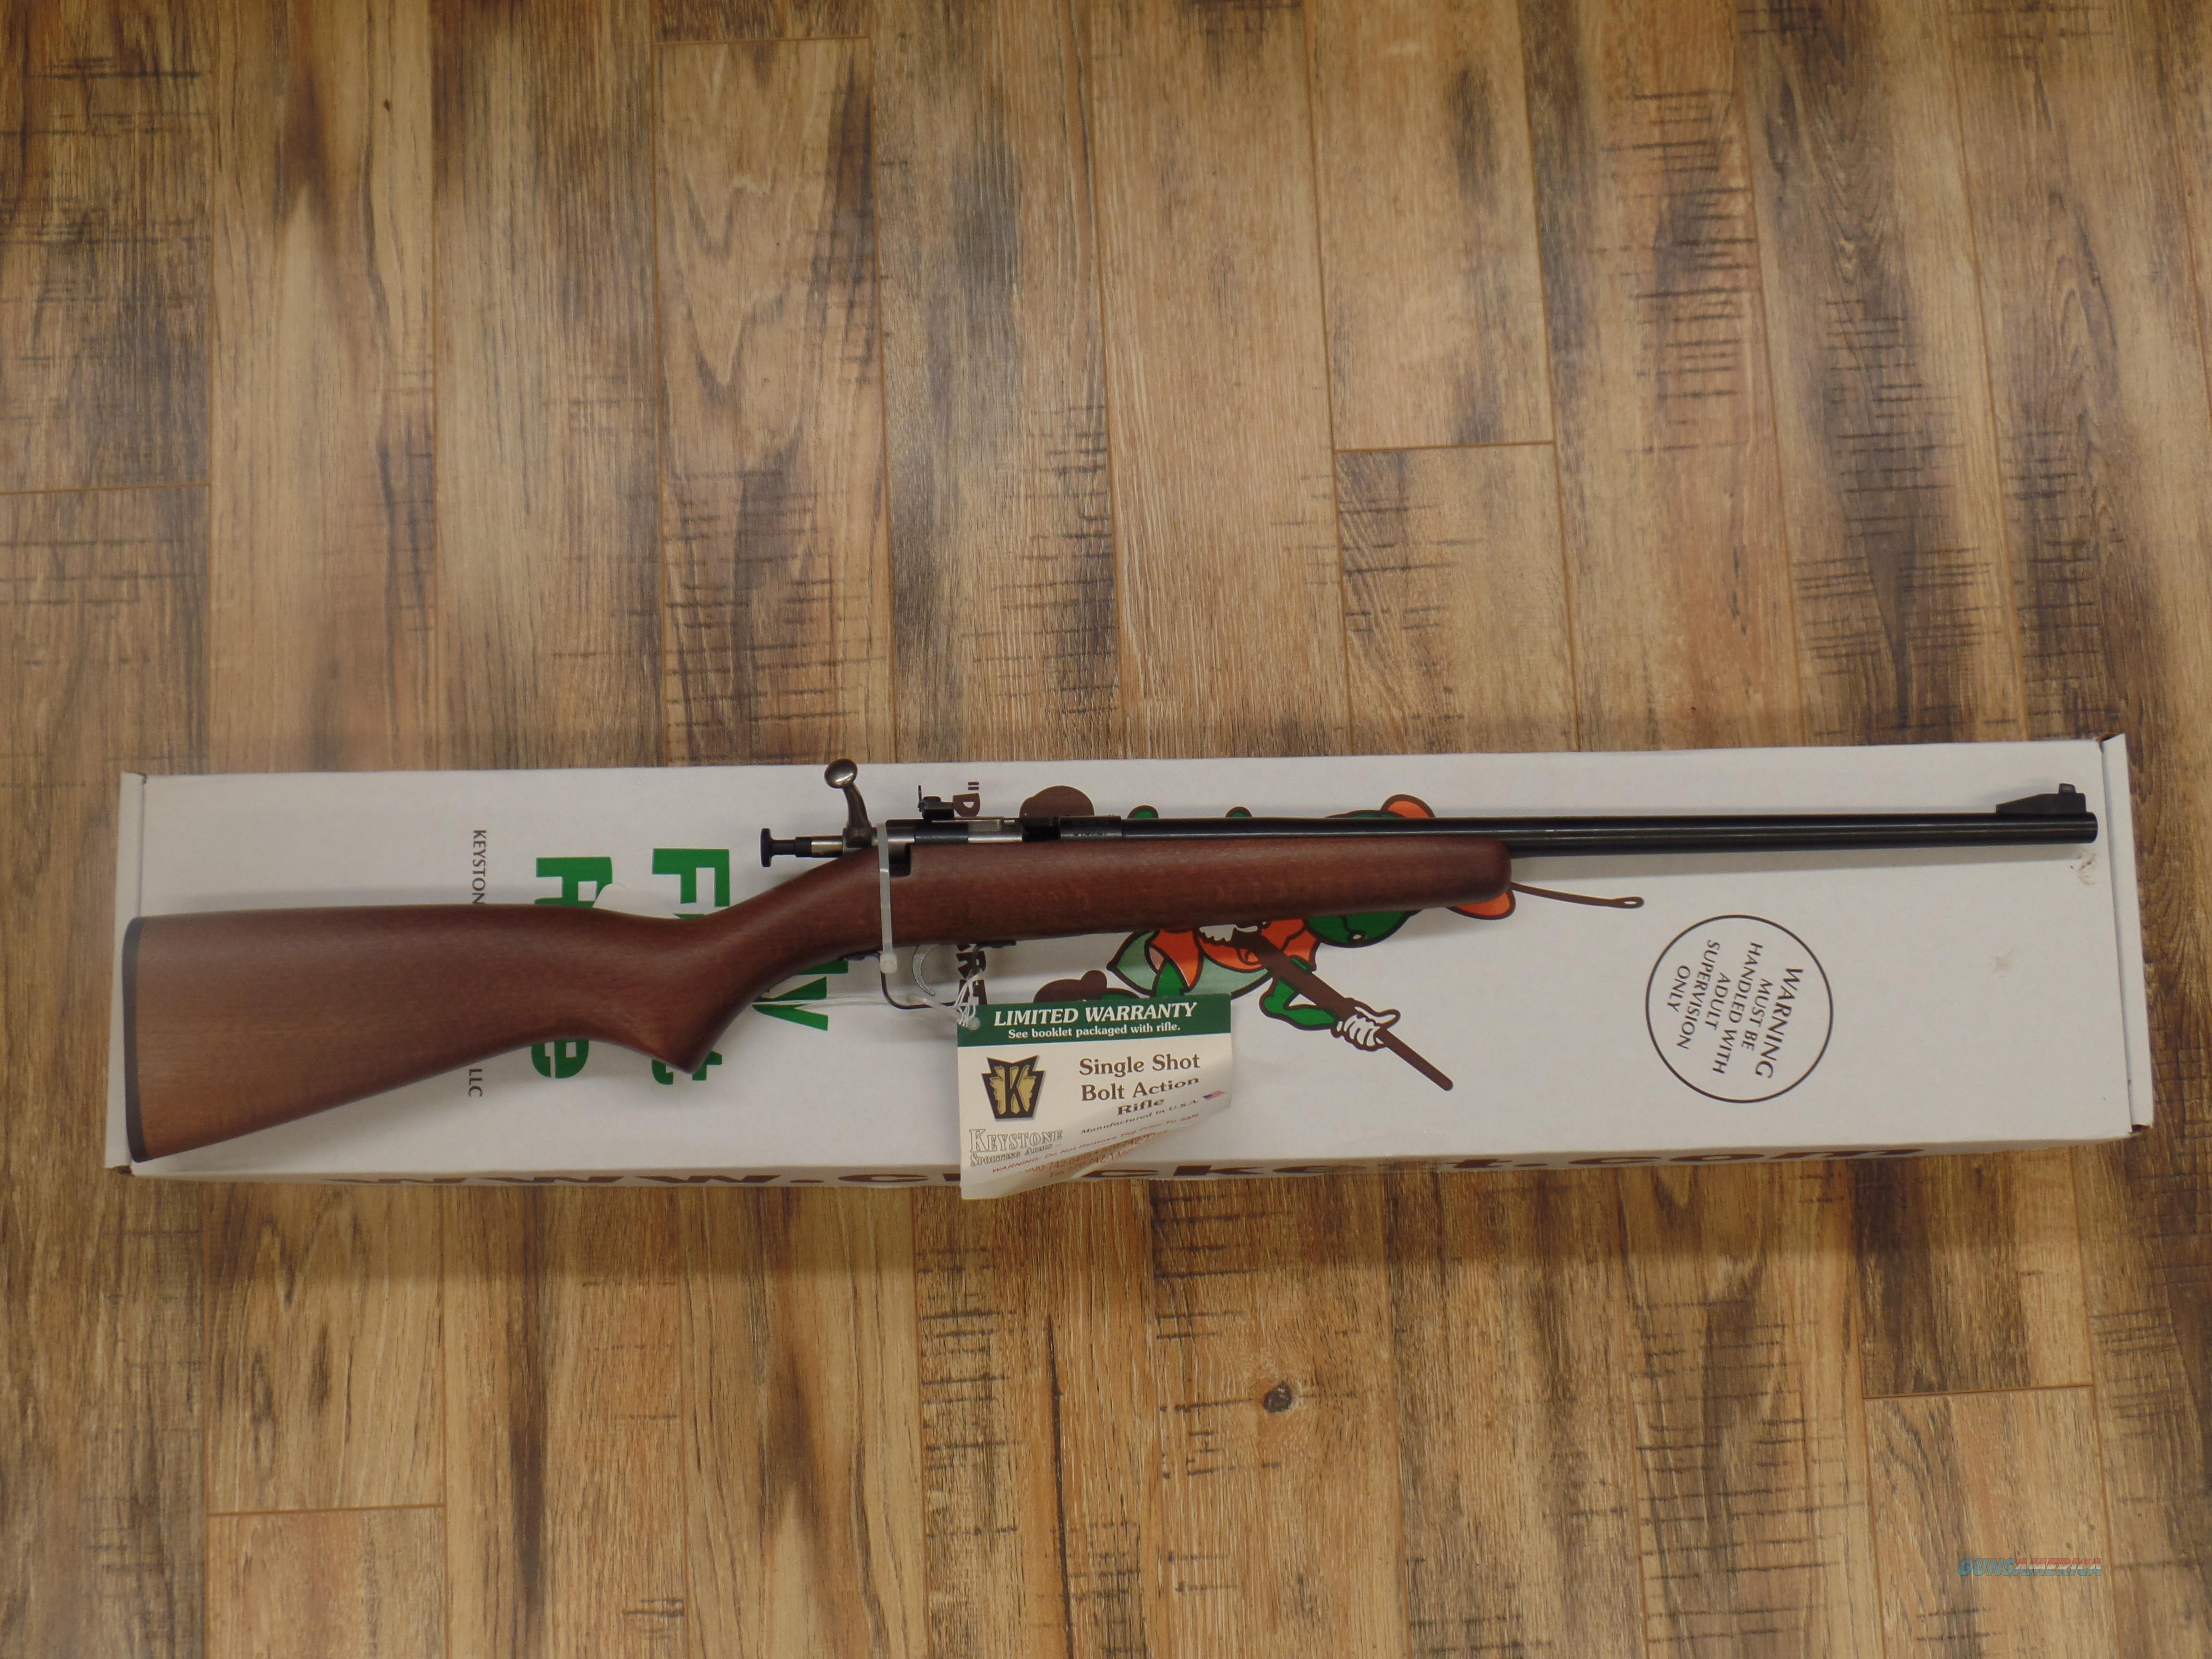 Keystone Arms Crickett Wood (22 LR)  Guns > Rifles > Crickett-Keystone Rifles